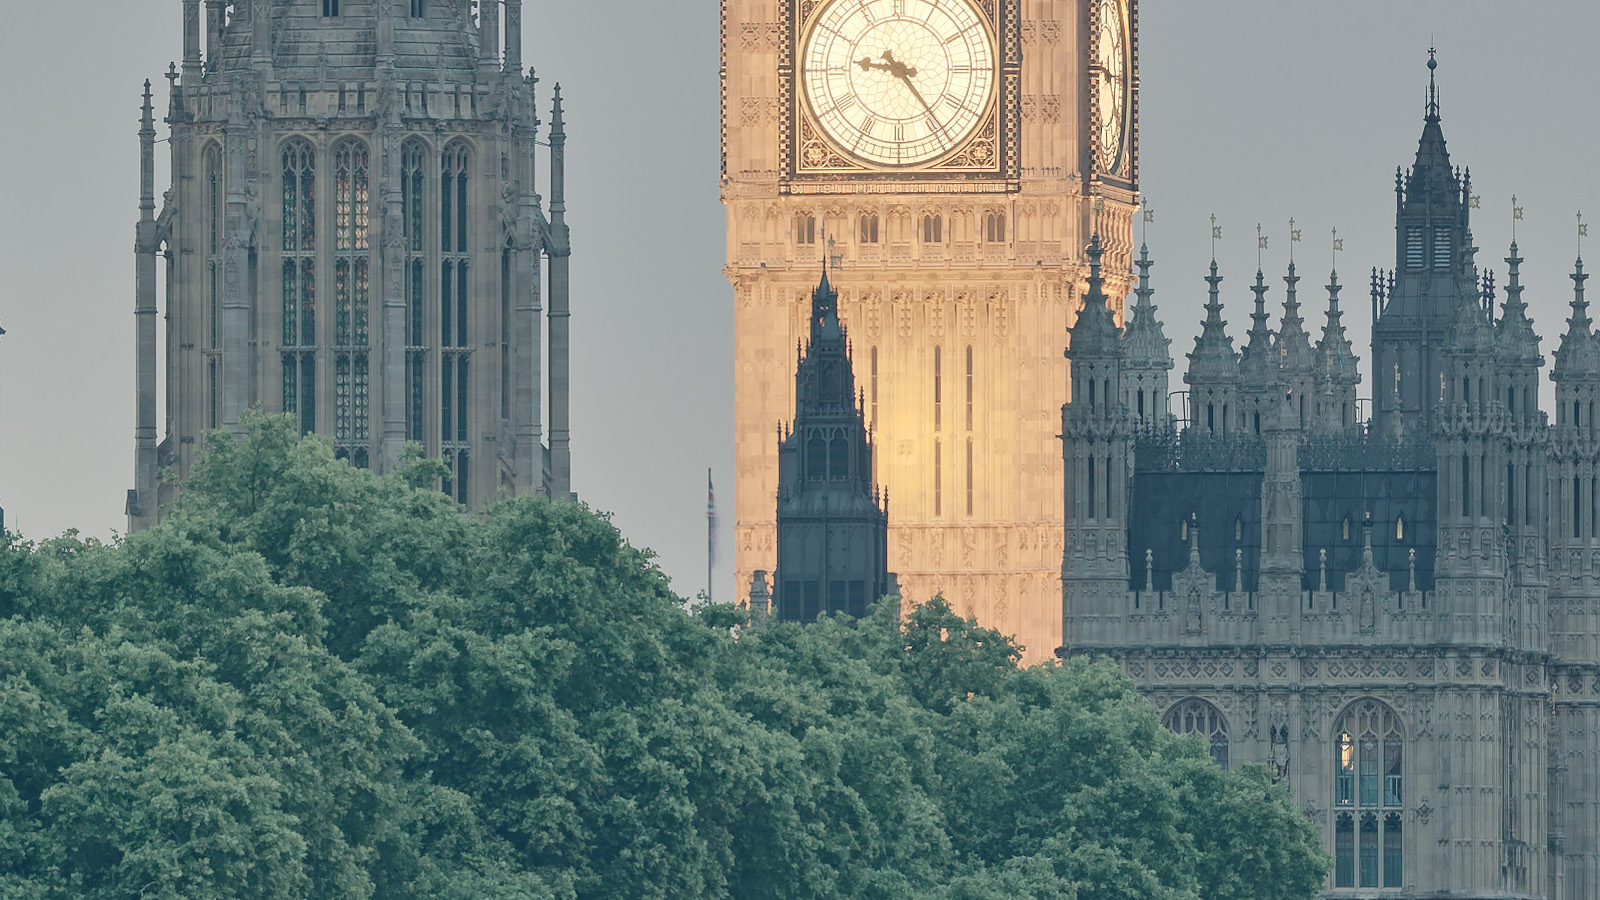 Lambeth Bridge Detail - Big Ben and the Houses of Parliament. London High-Res Fine Art Photography.